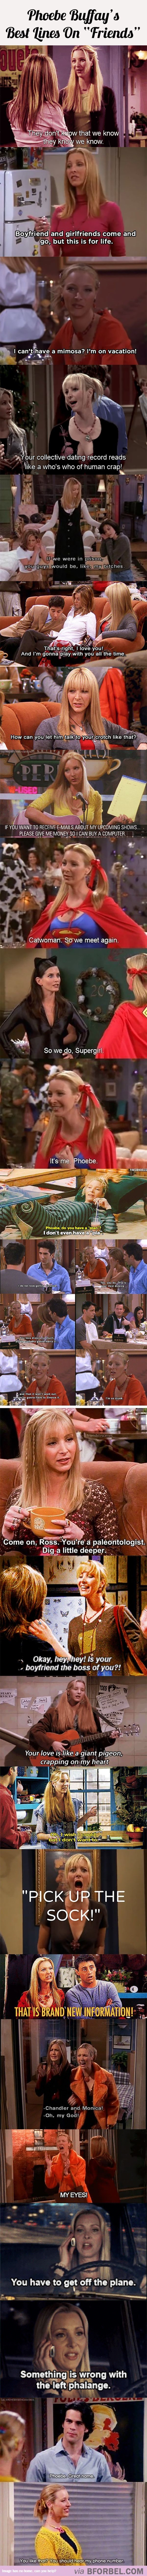 "19 Of Phoebe Buffay's Best Lines On ""Friends""…"